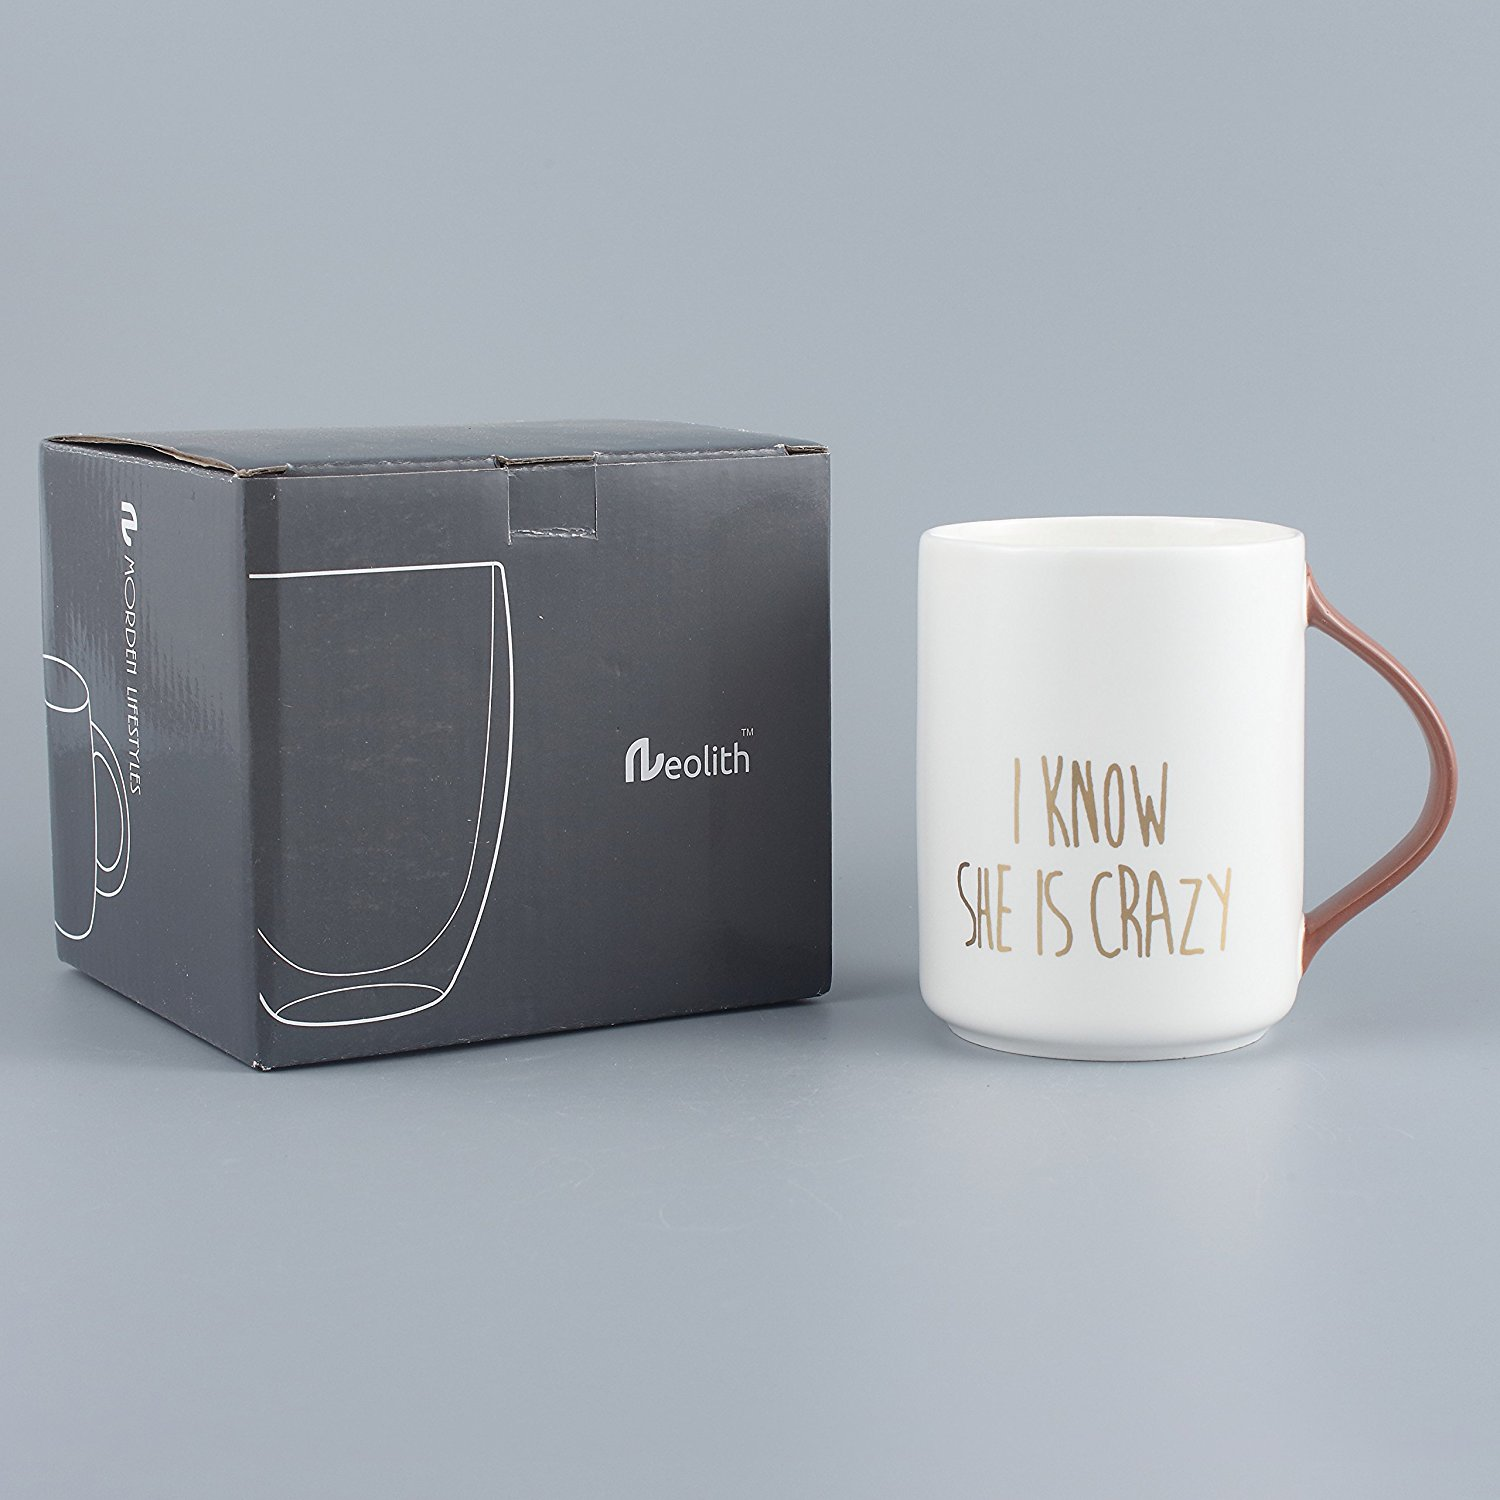 Neolith 15 Oz Large Coffee Mug with Handle Best Price Review